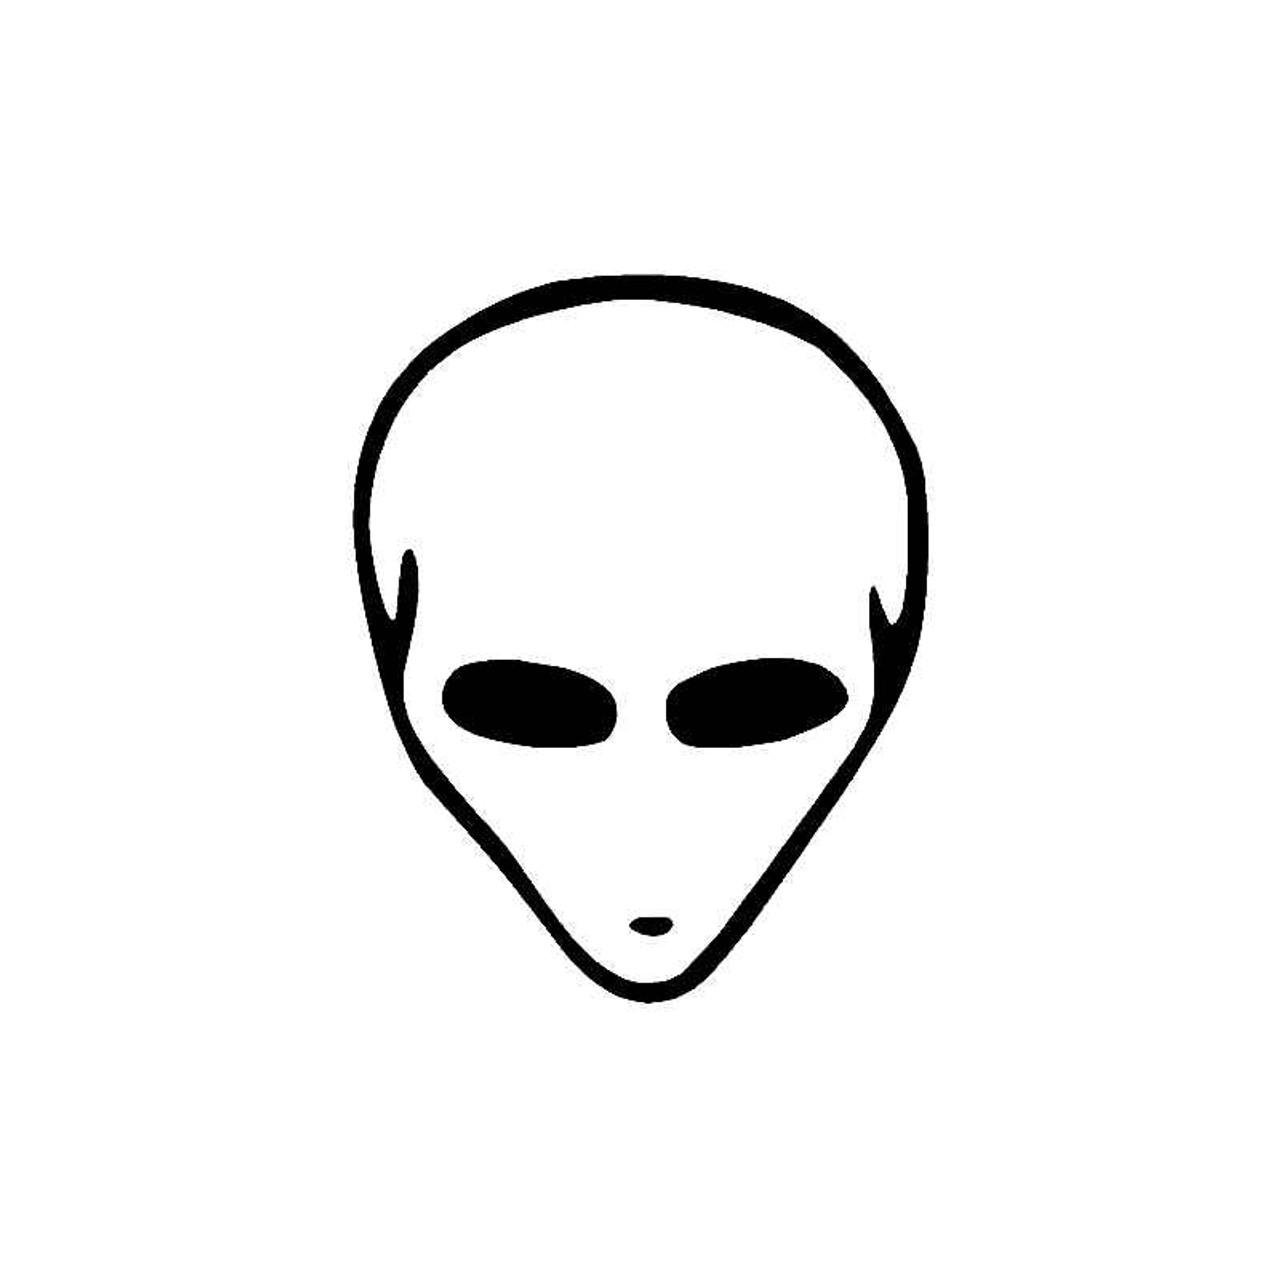 Alien Head 3 Decal Click to find the best results for alien head models for your 3d printer. alien head 3 decal